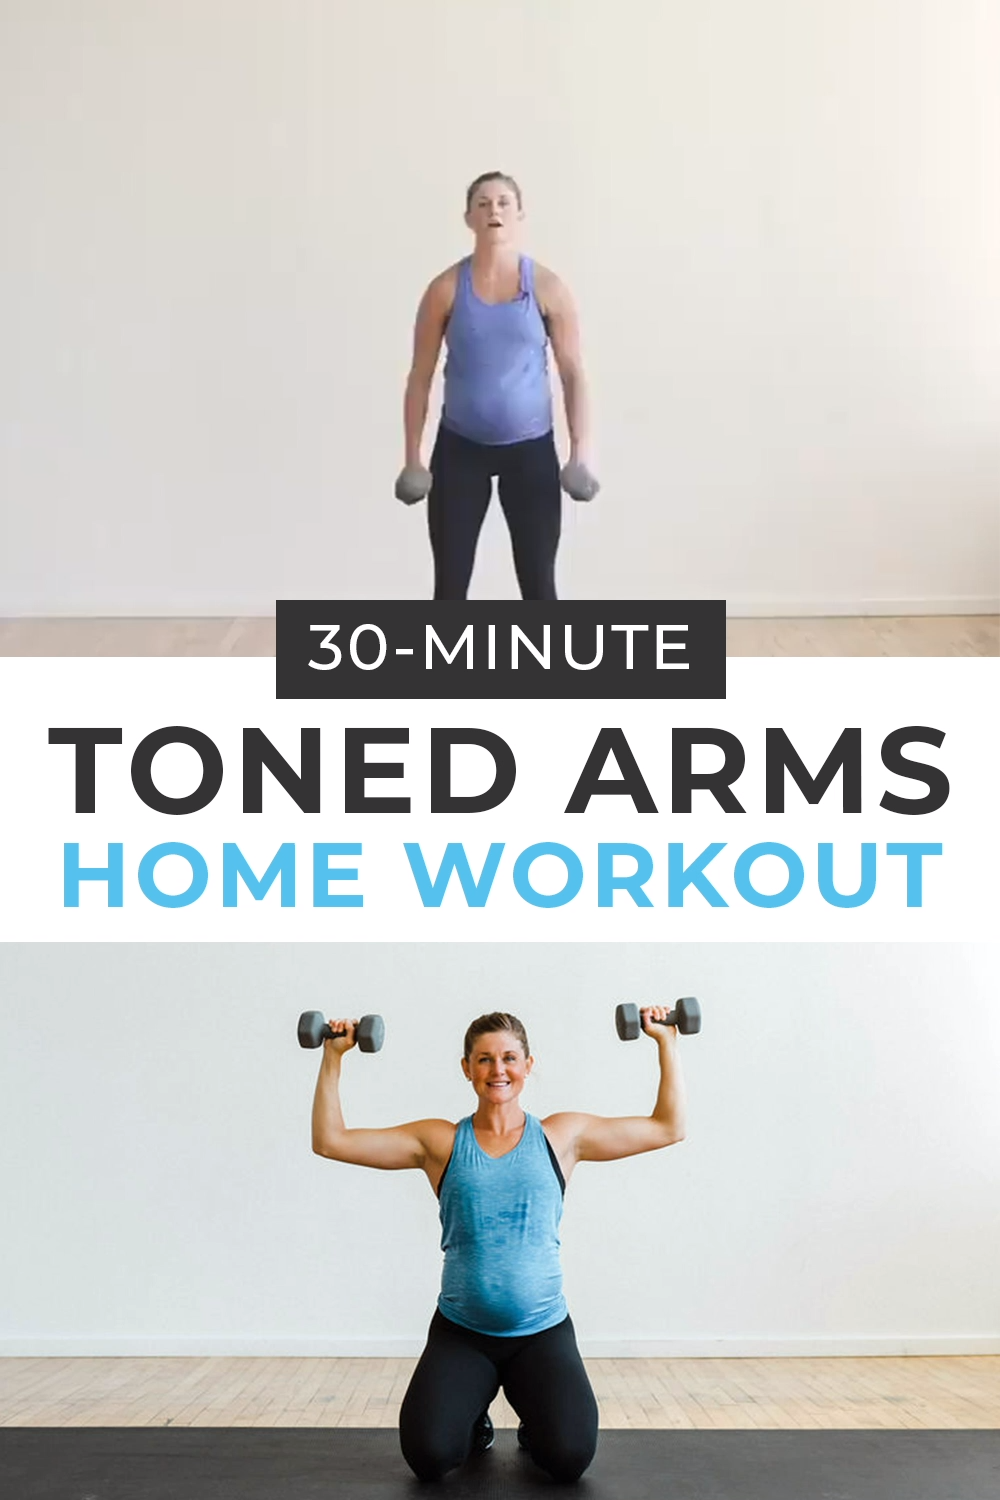 Get strong, toned arms at home with this DUMBBELL ARM WORKOUT! Follow along with the guided video as Lindsey coaches you through the best arm exercises with dumbbells!